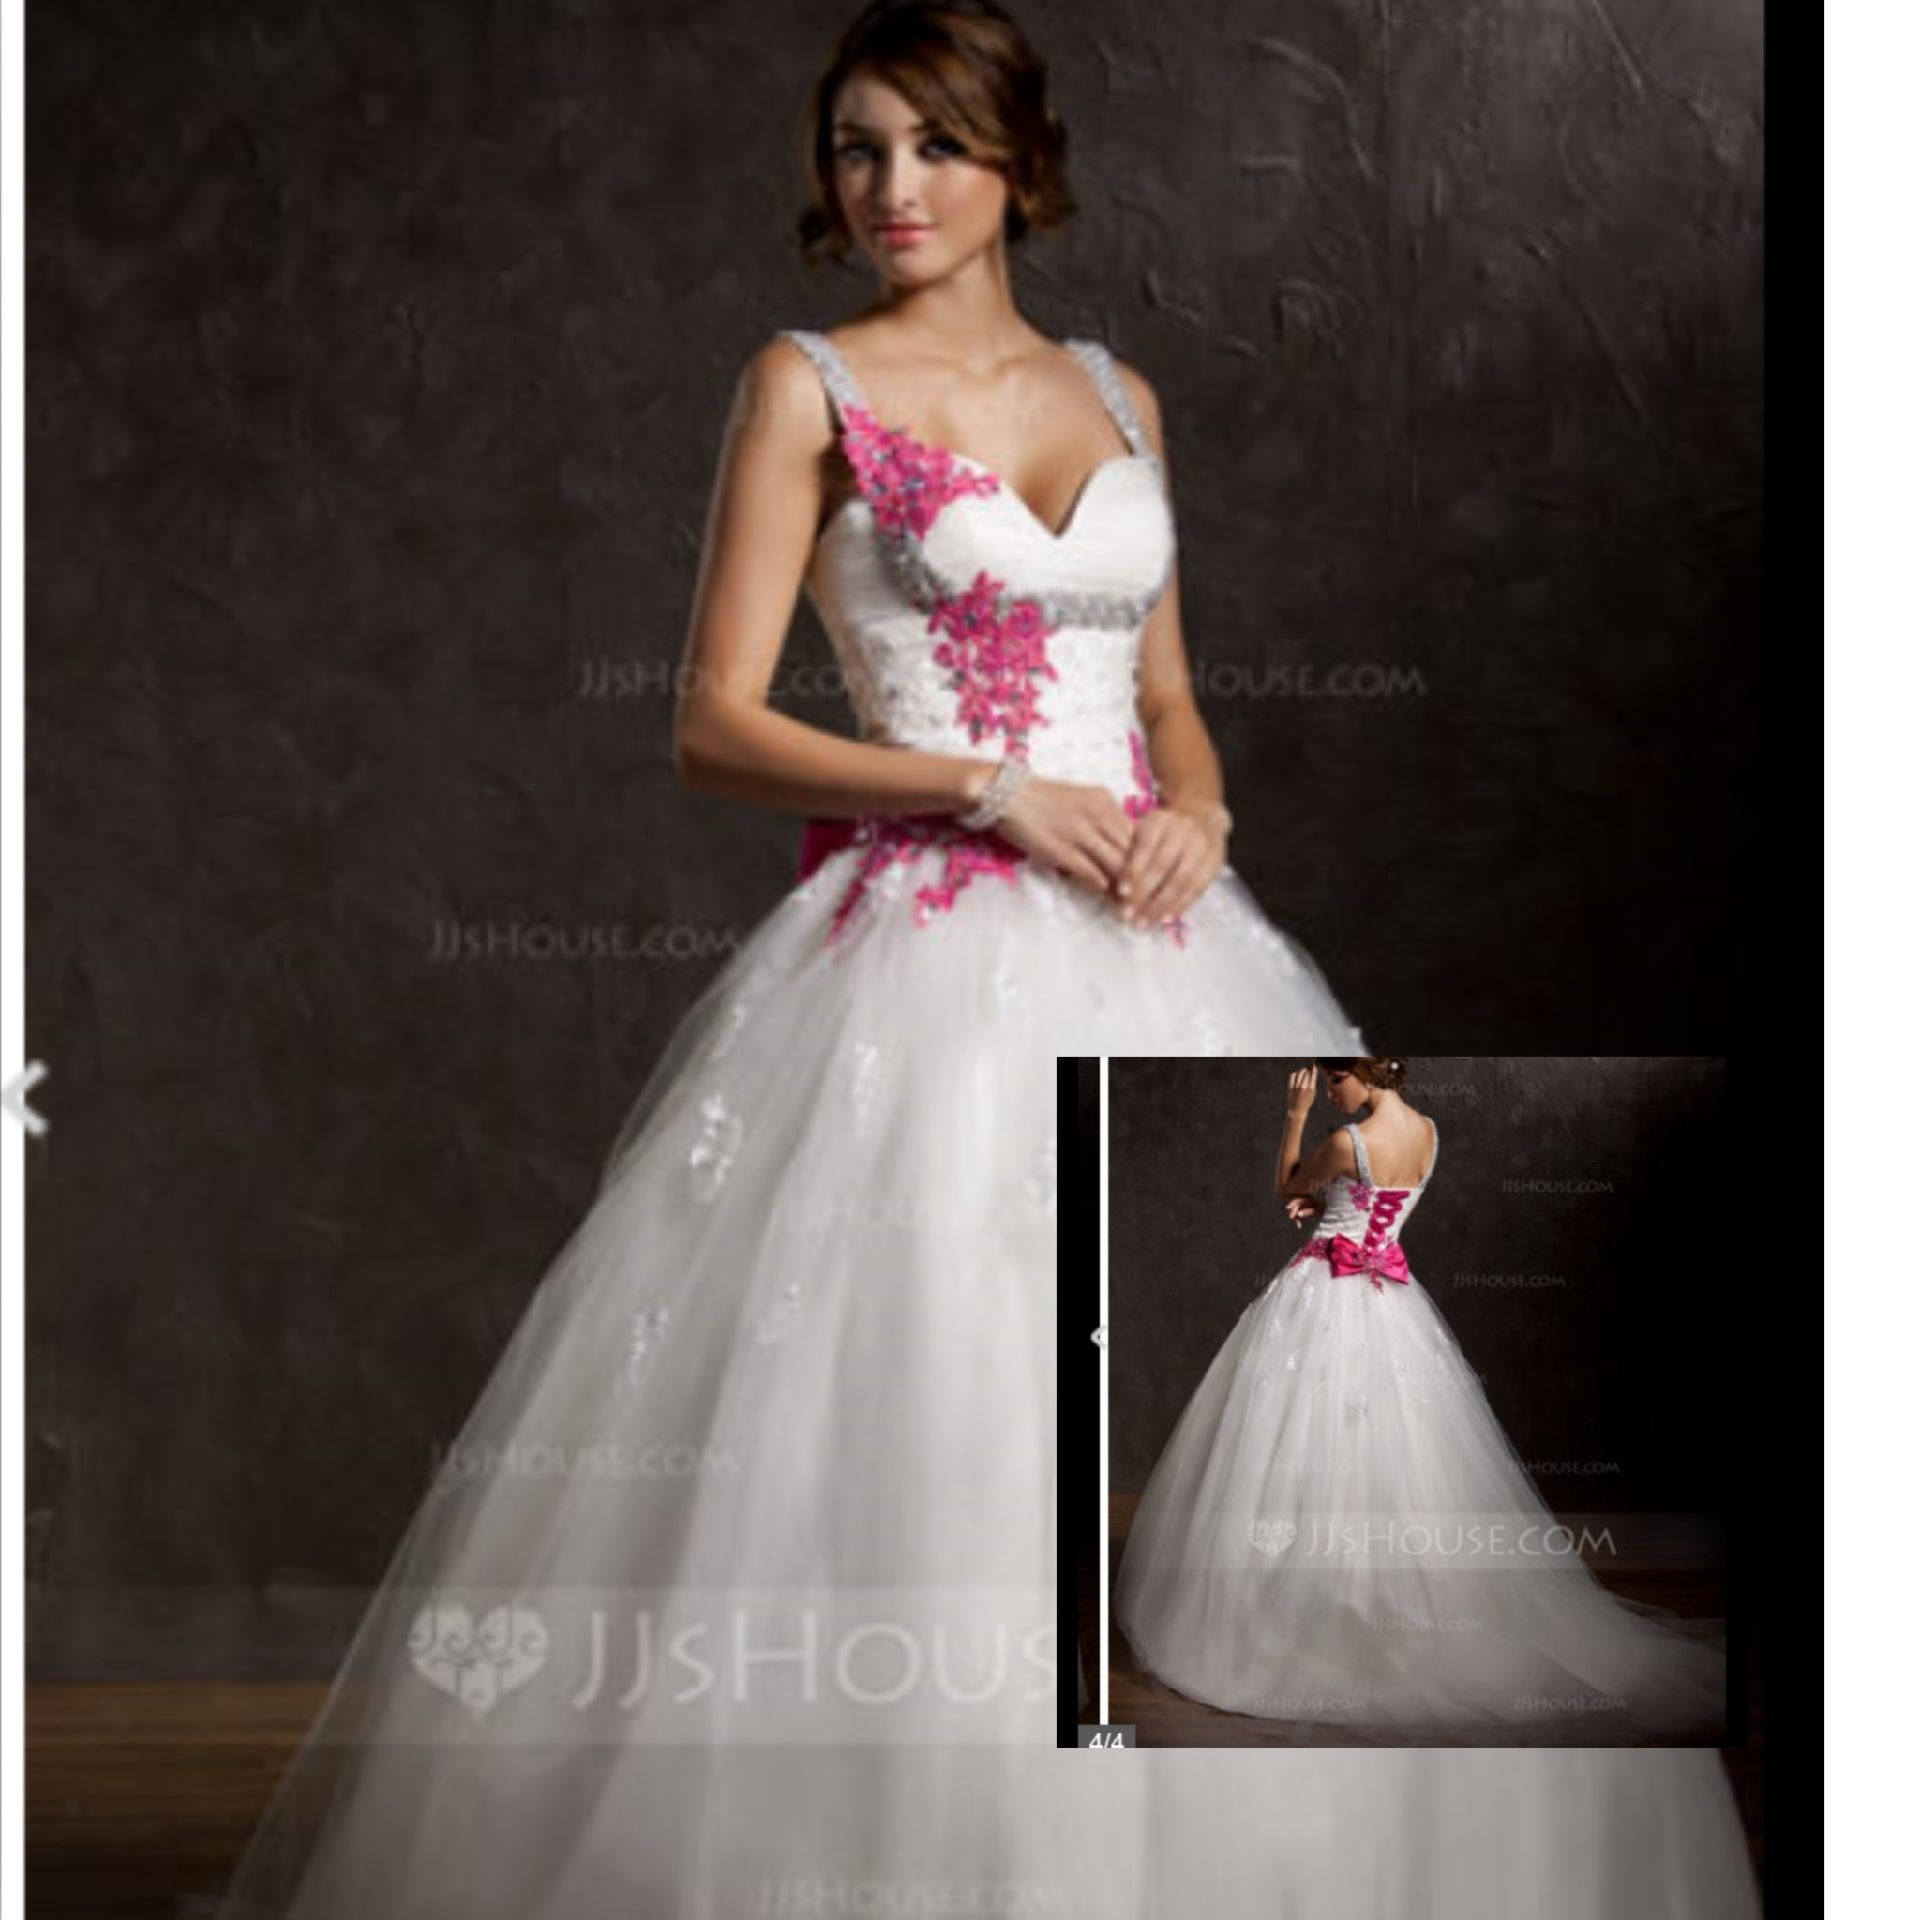 This is a ball-gown sweetheart chapel train tulle wedding dress w/ ruffle appliques lace bow(s) for $189.99 and it's 60% off. Found on jj's house. Hope you like.